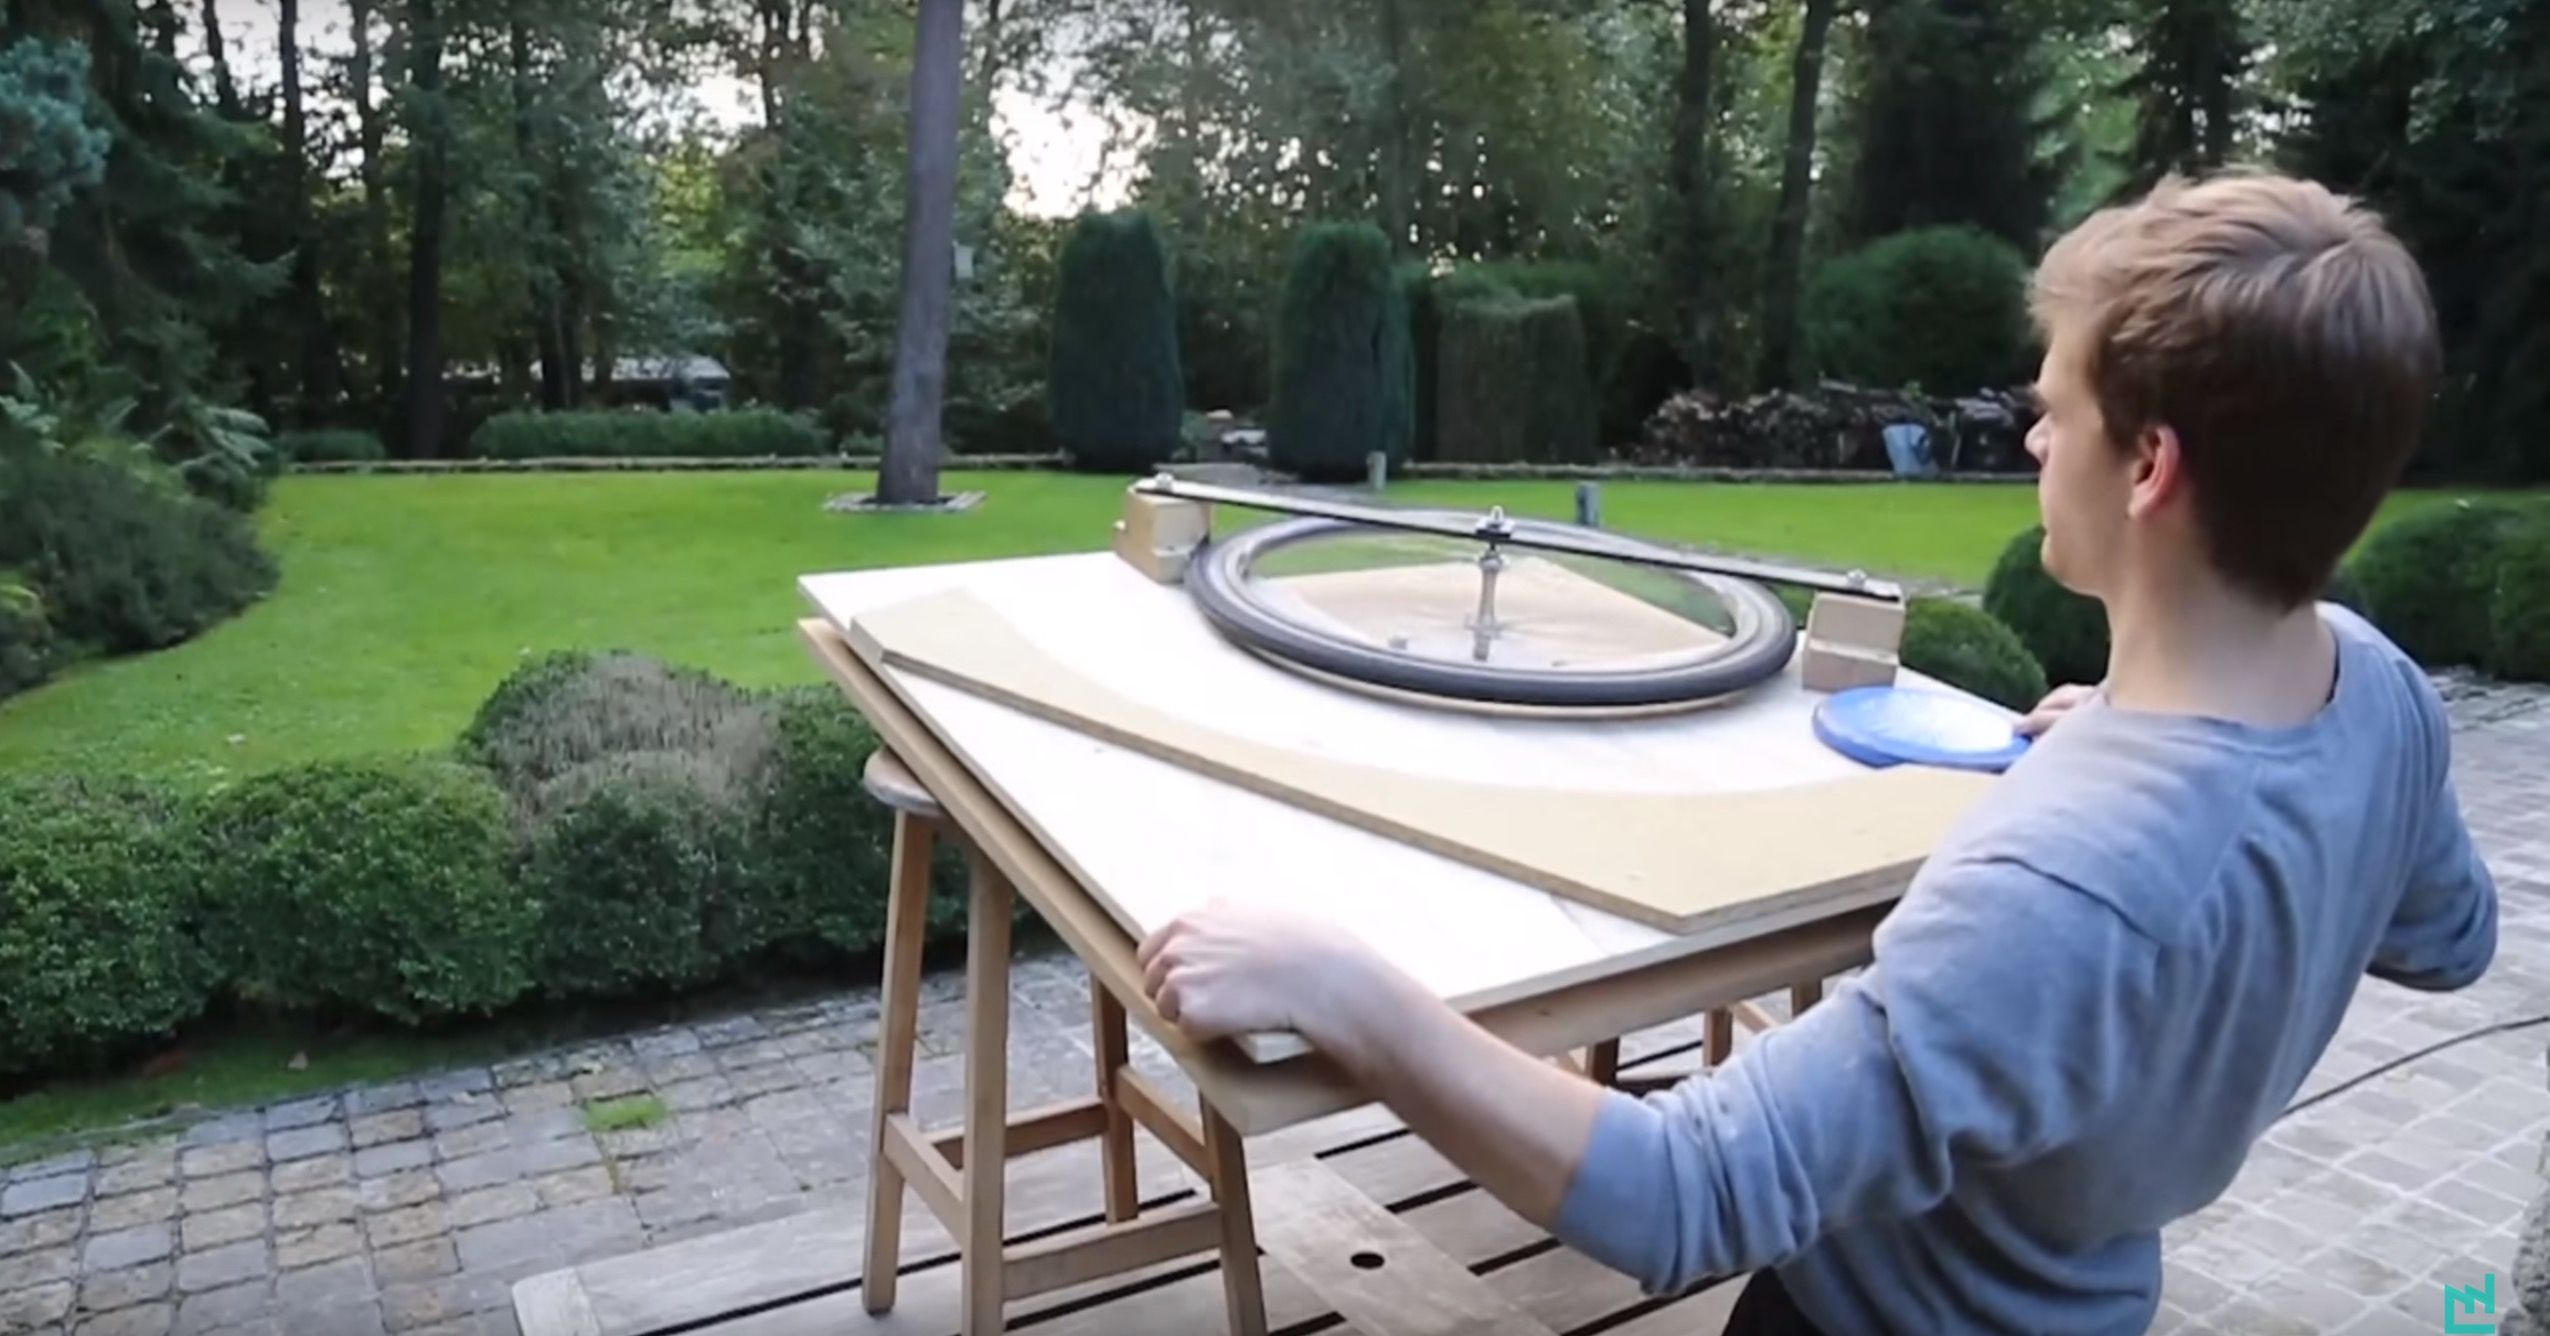 throw frisbees with an old drill and beat up bike wheel